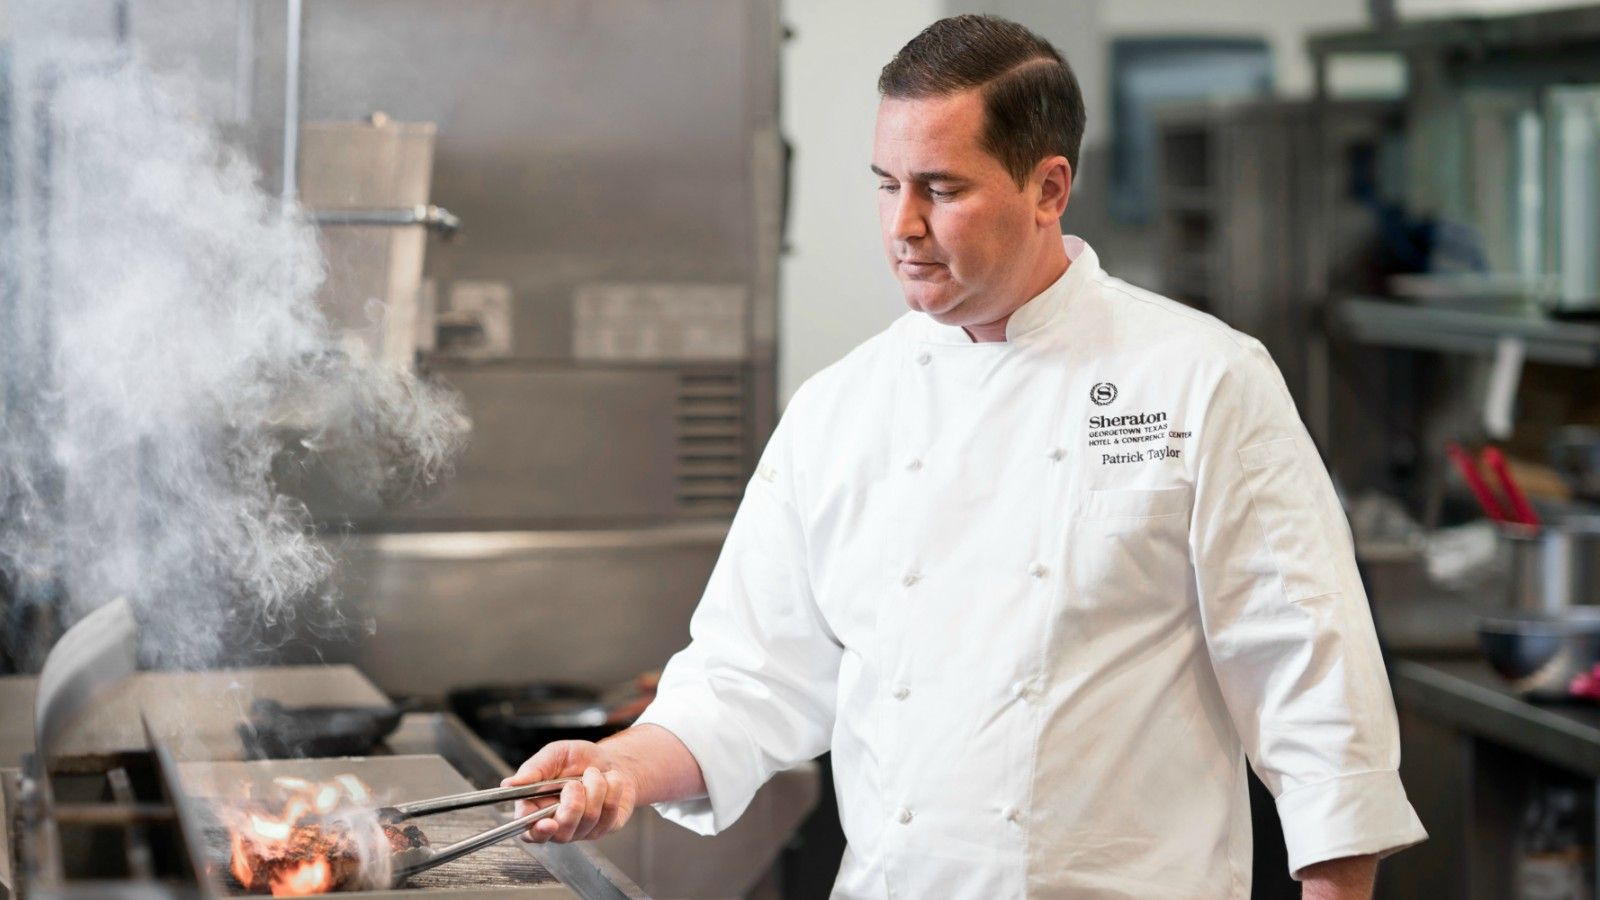 Chef Patrick Taylor - Sheraton Austin Georgetown Hotel & Conference Center